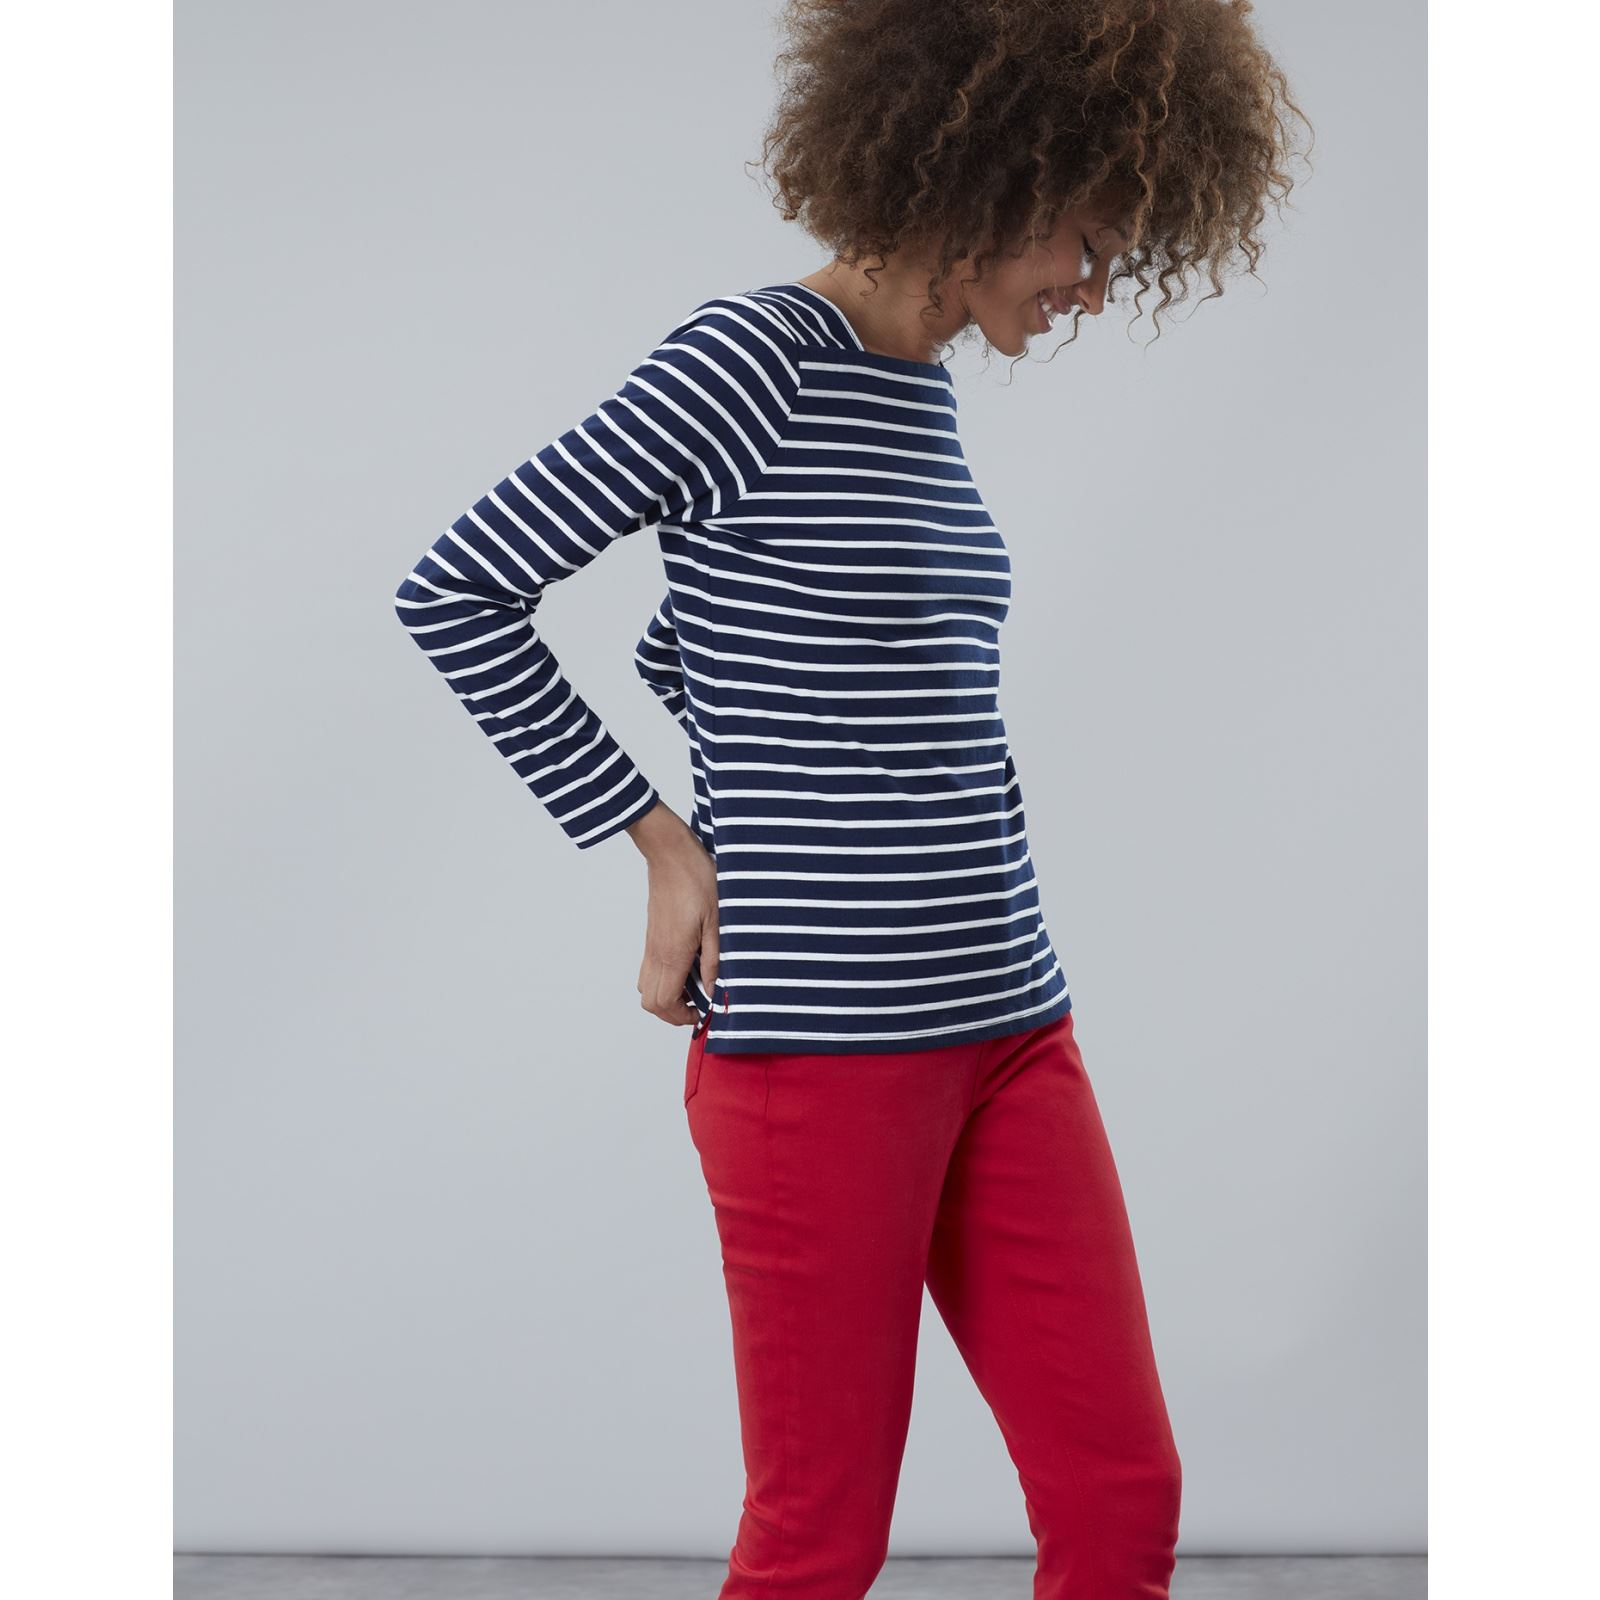 Joules-Matilde-Ladies-Square-Neck-Jersey-Top-ALL-COLOURS thumbnail 5